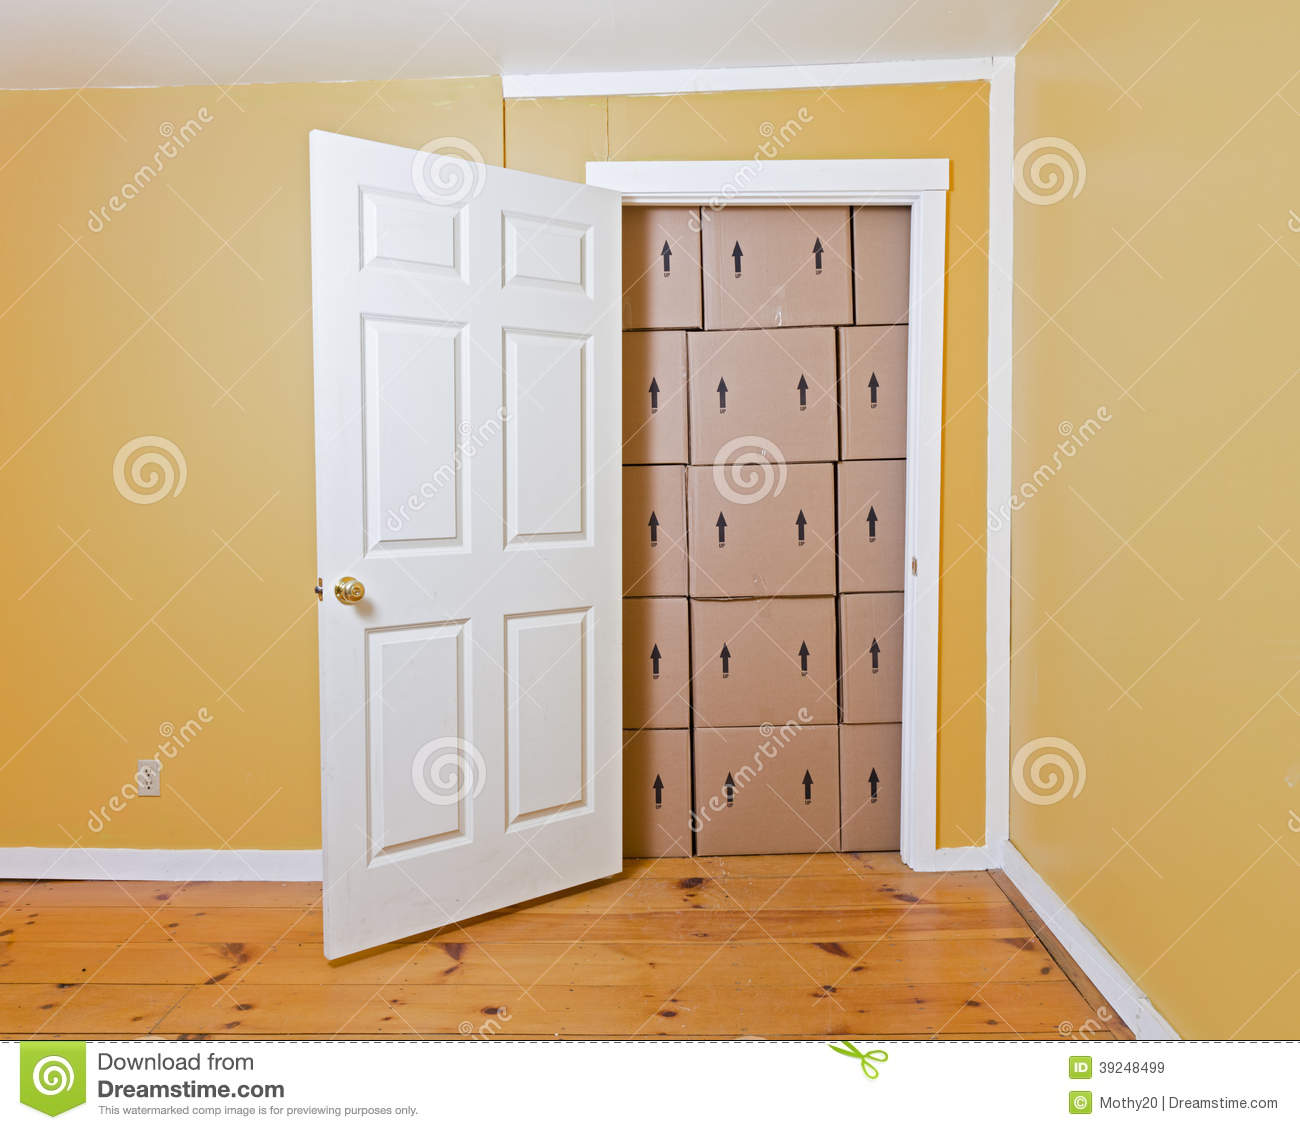 Door Blocked By Boxes Stock Photo - Image: 39248499